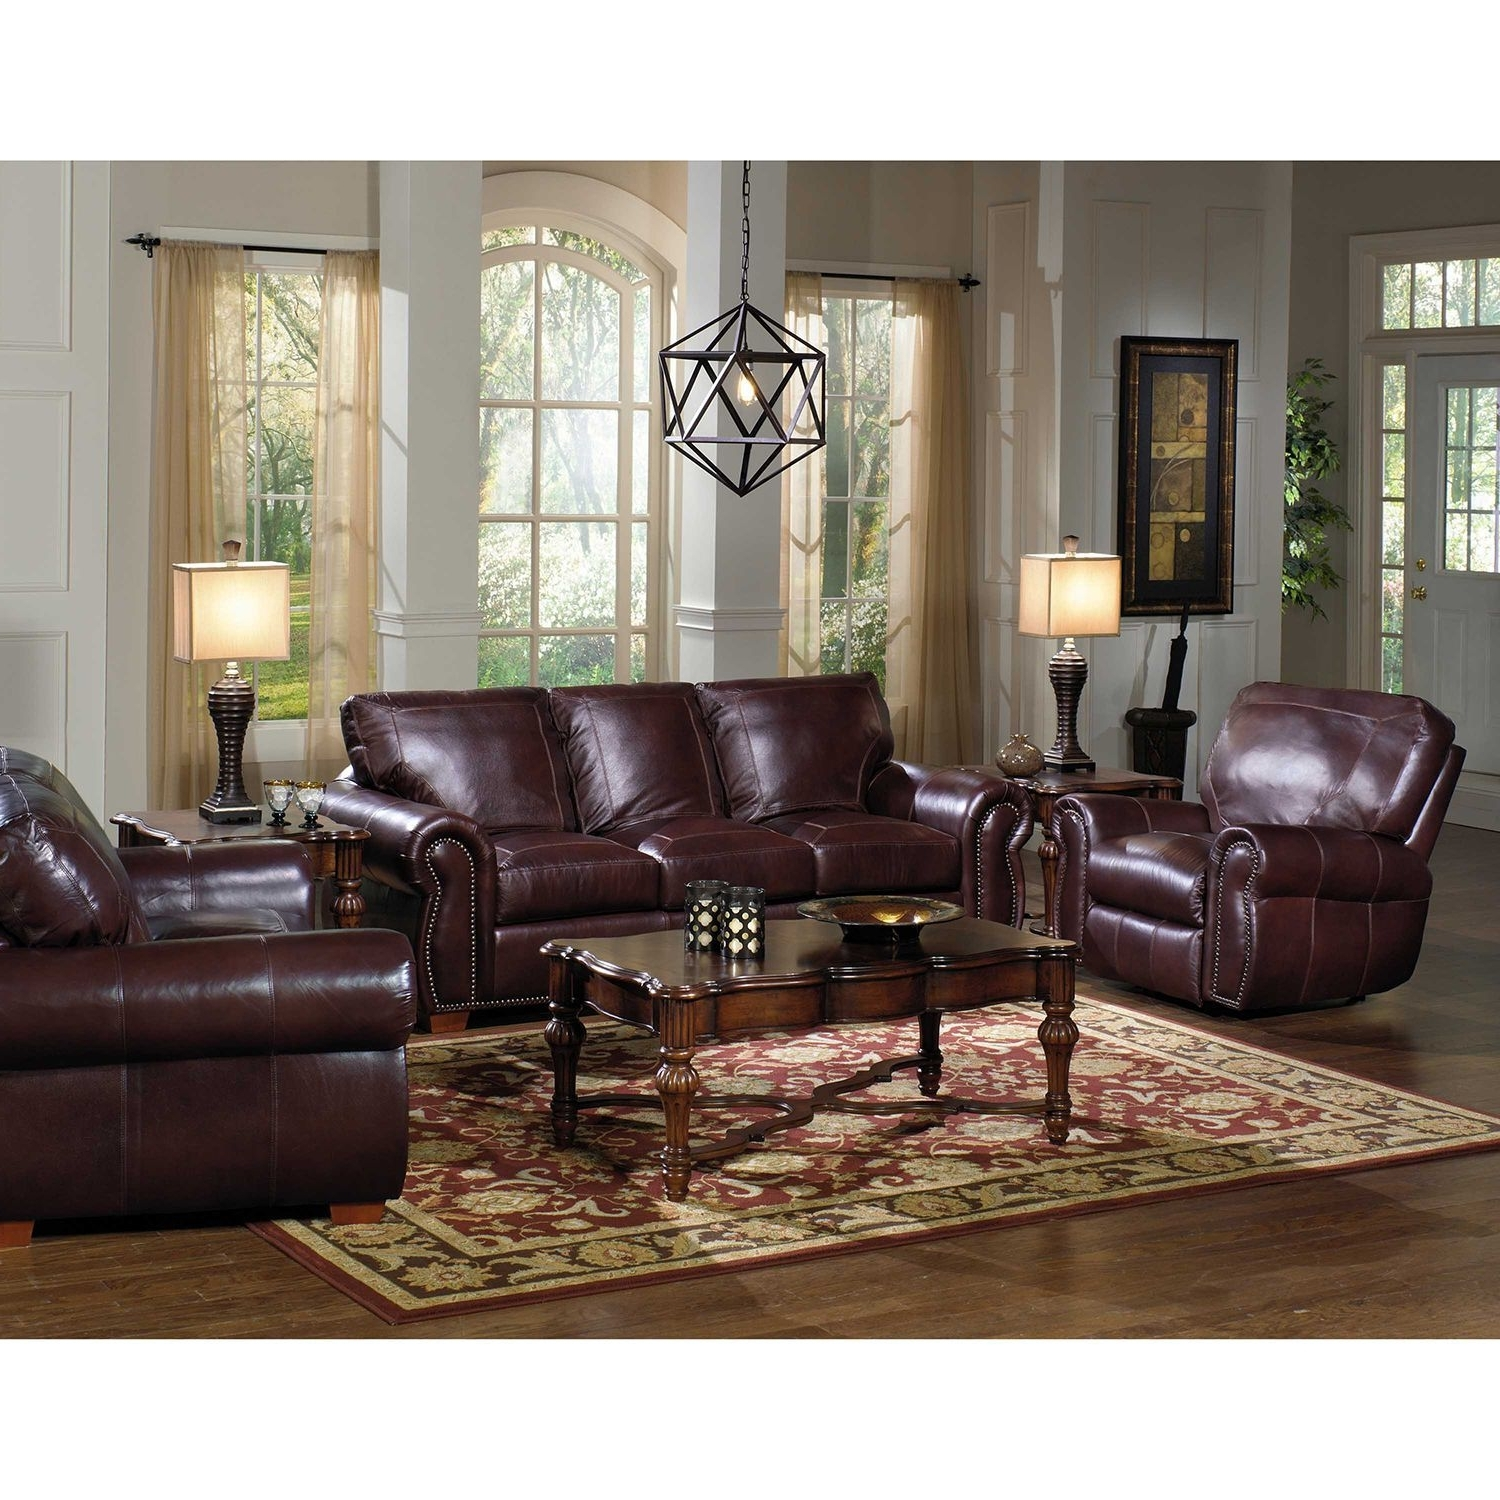 Kingston Top-Grain Leather Sofa, Loveseat And Recliner Living Room within Widely used Sams Club Sectional Sofas